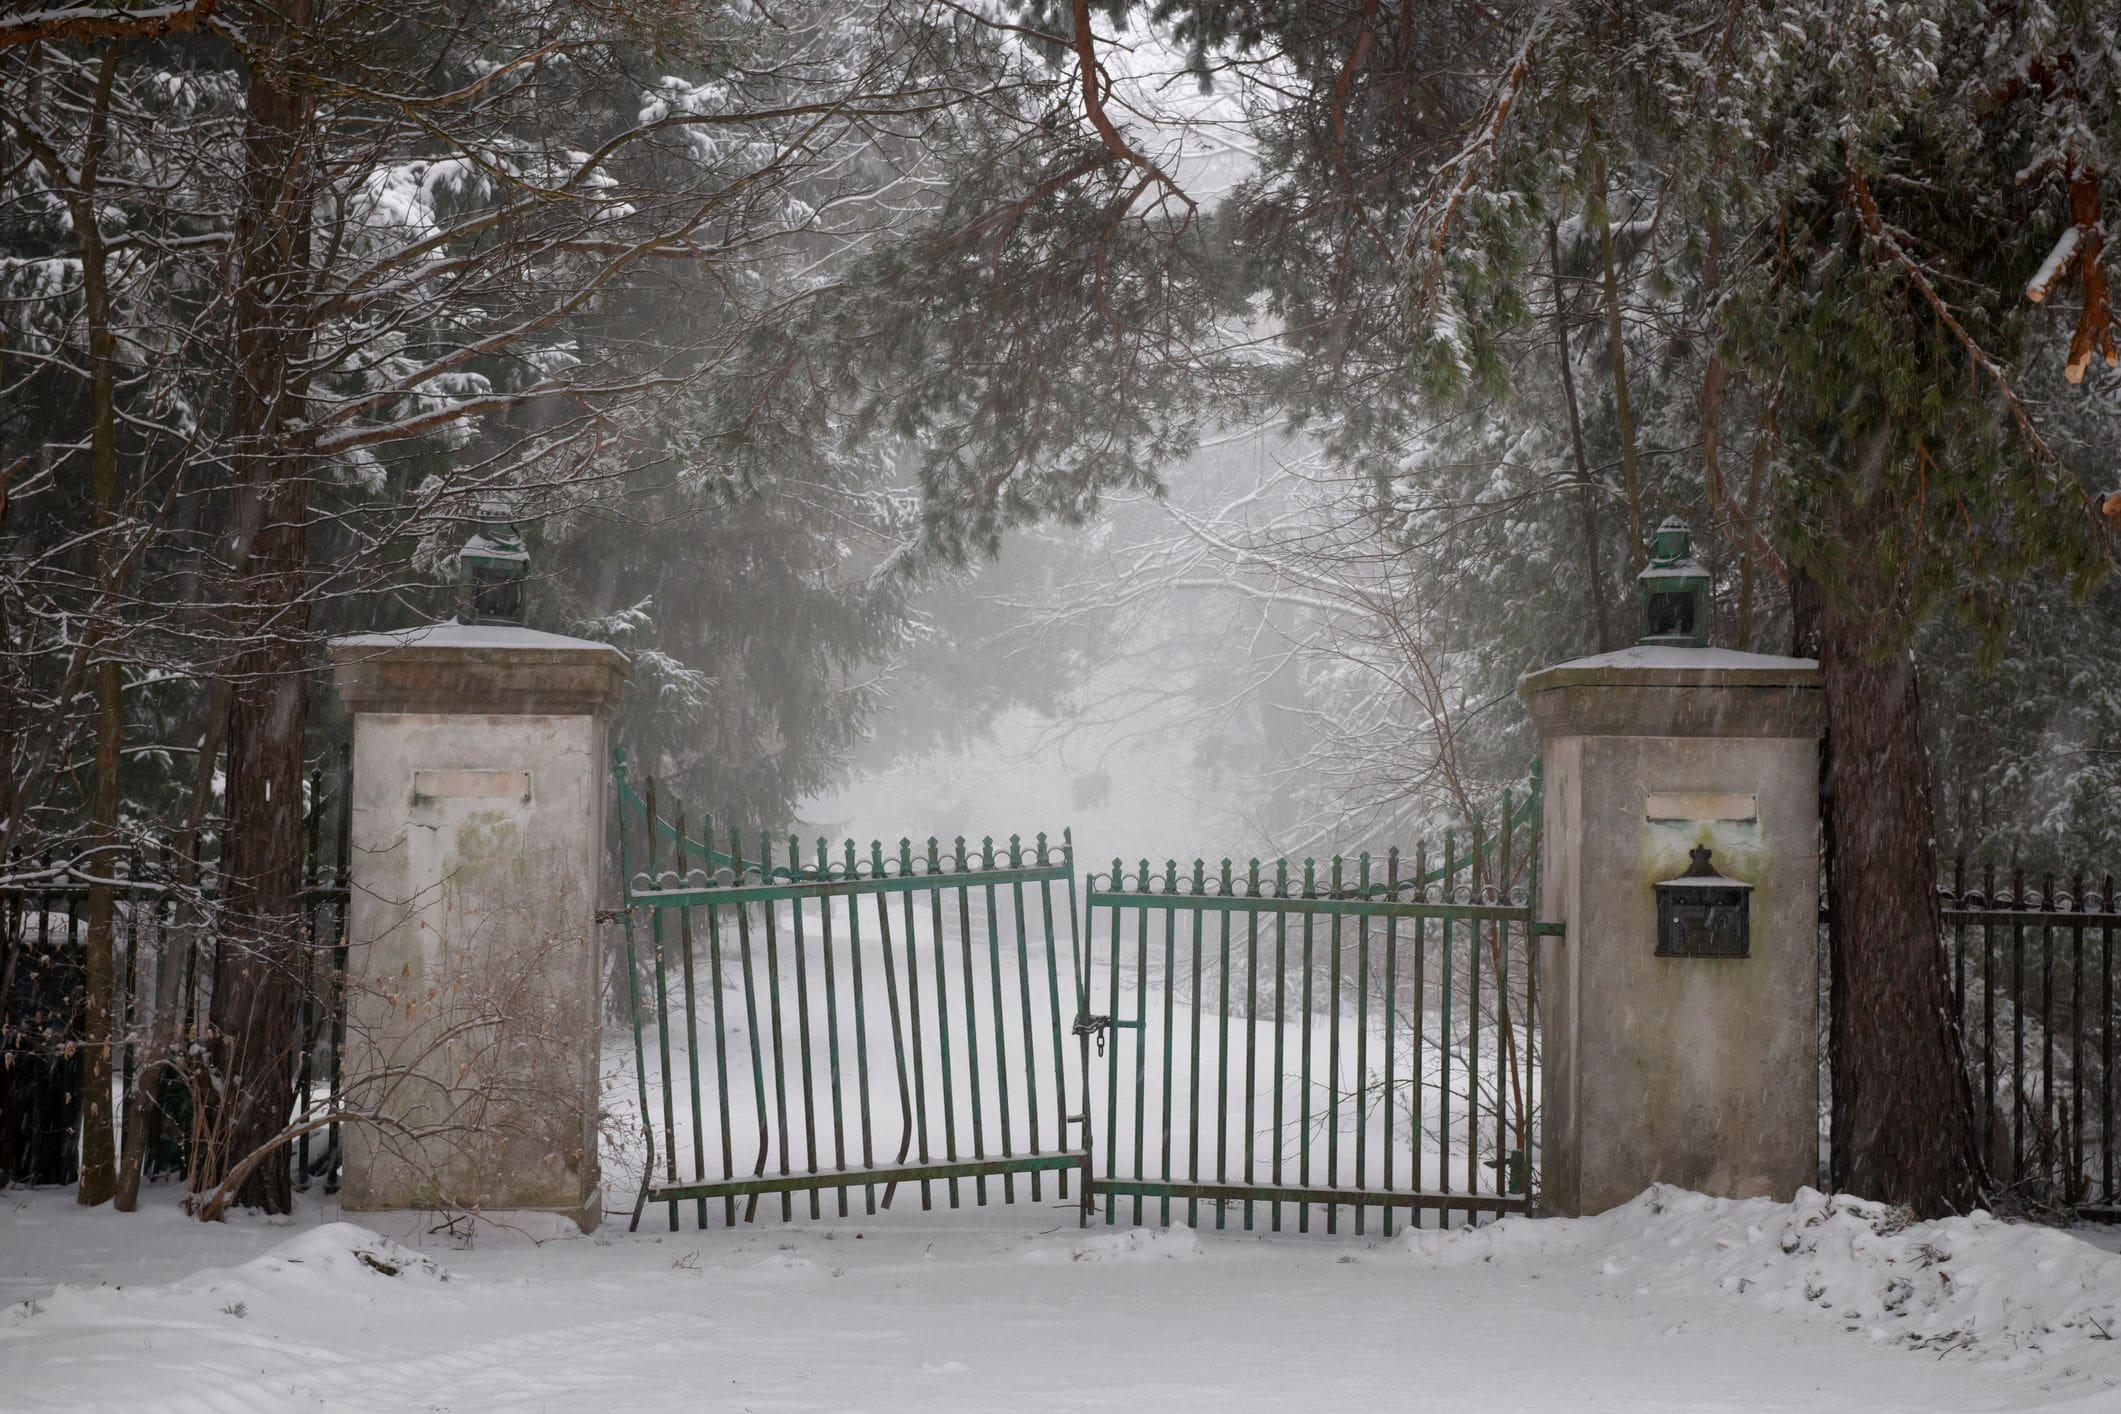 snowy driveway with a neglected run down gate